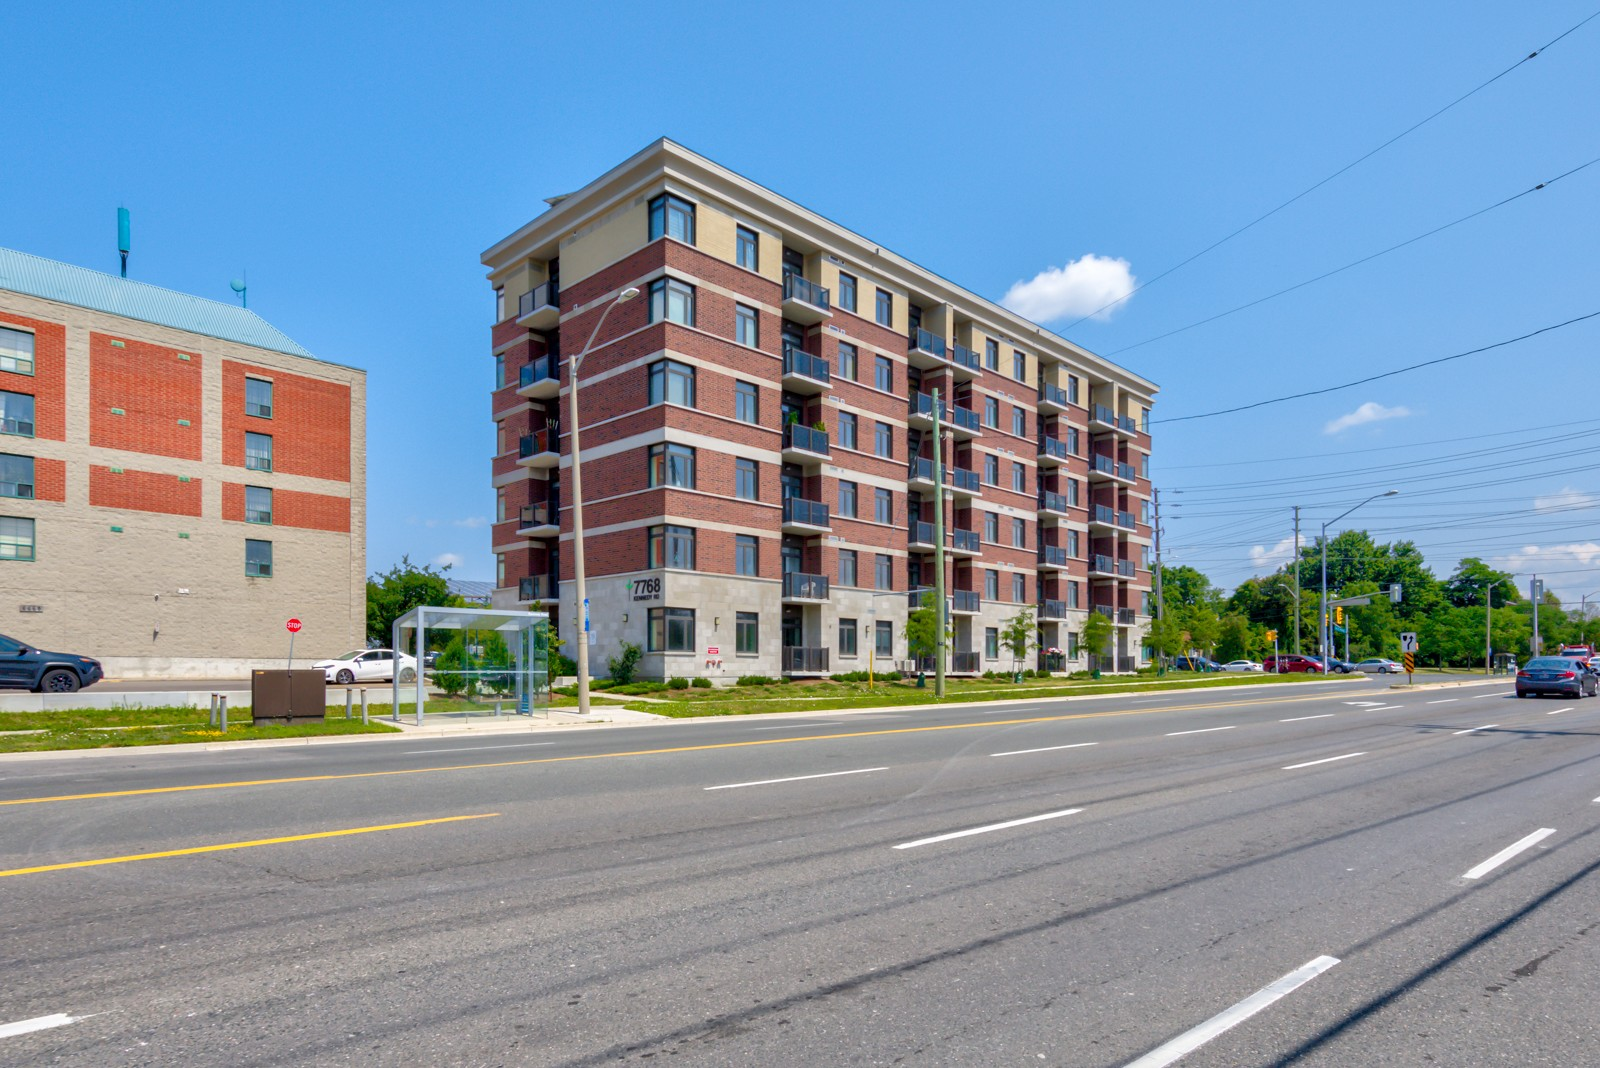 Greenlife Midtown Markham Condos at 7768 Kennedy Rd, Markham 0